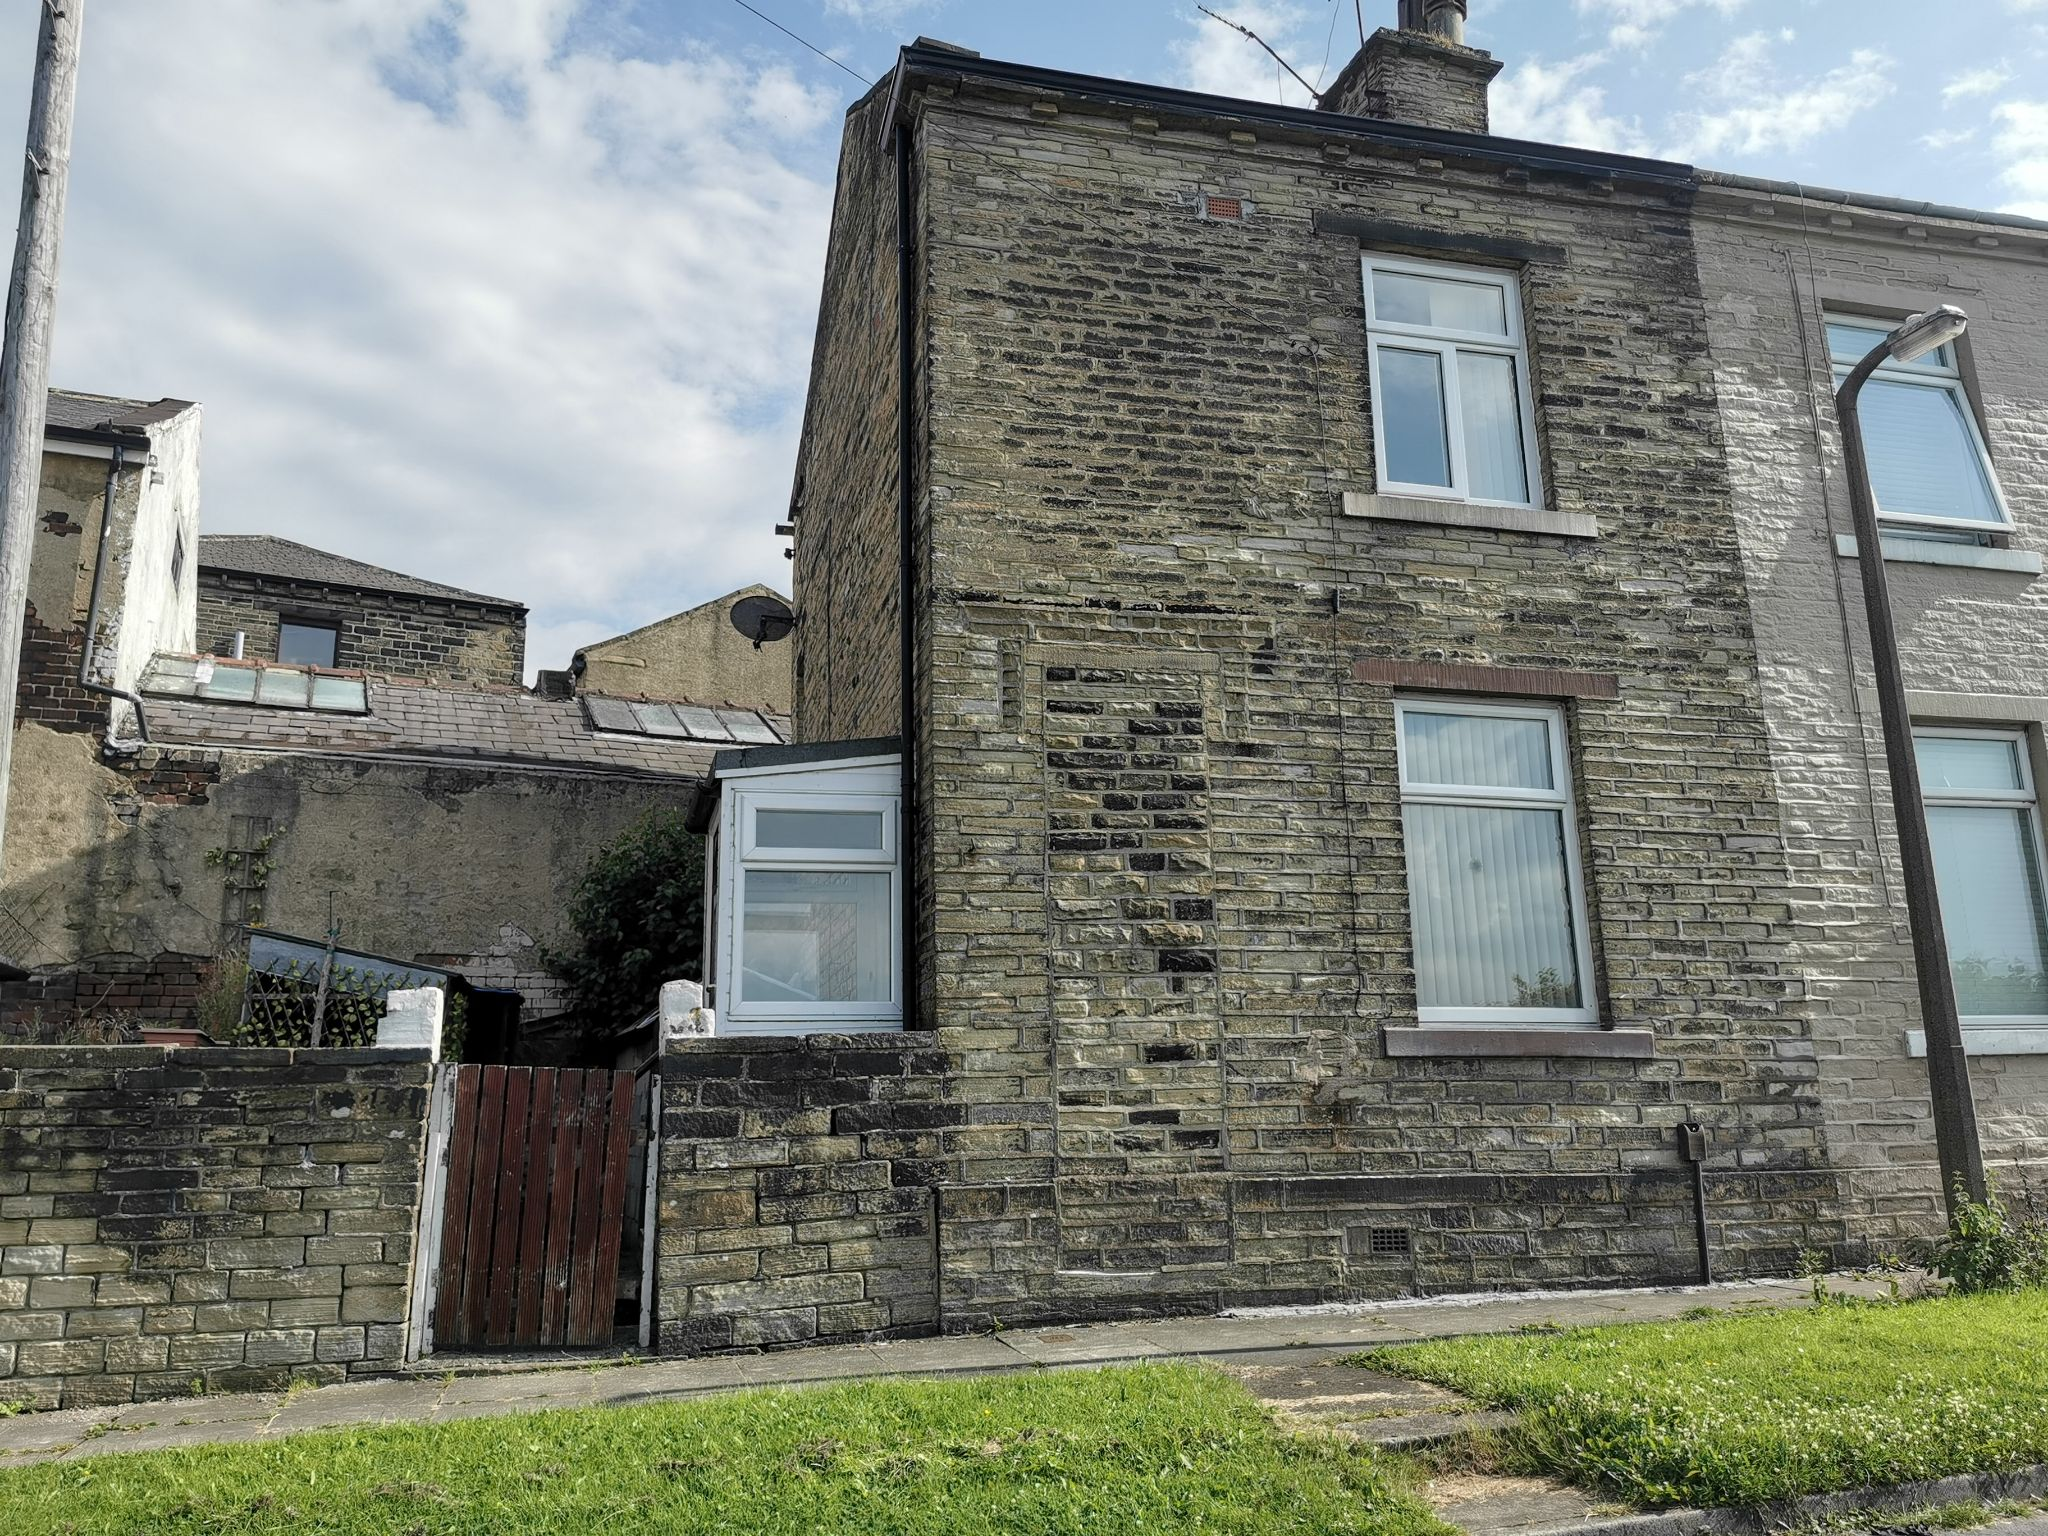 1 bedroom mid terraced house For Sale in Bradford - Photograph 1.